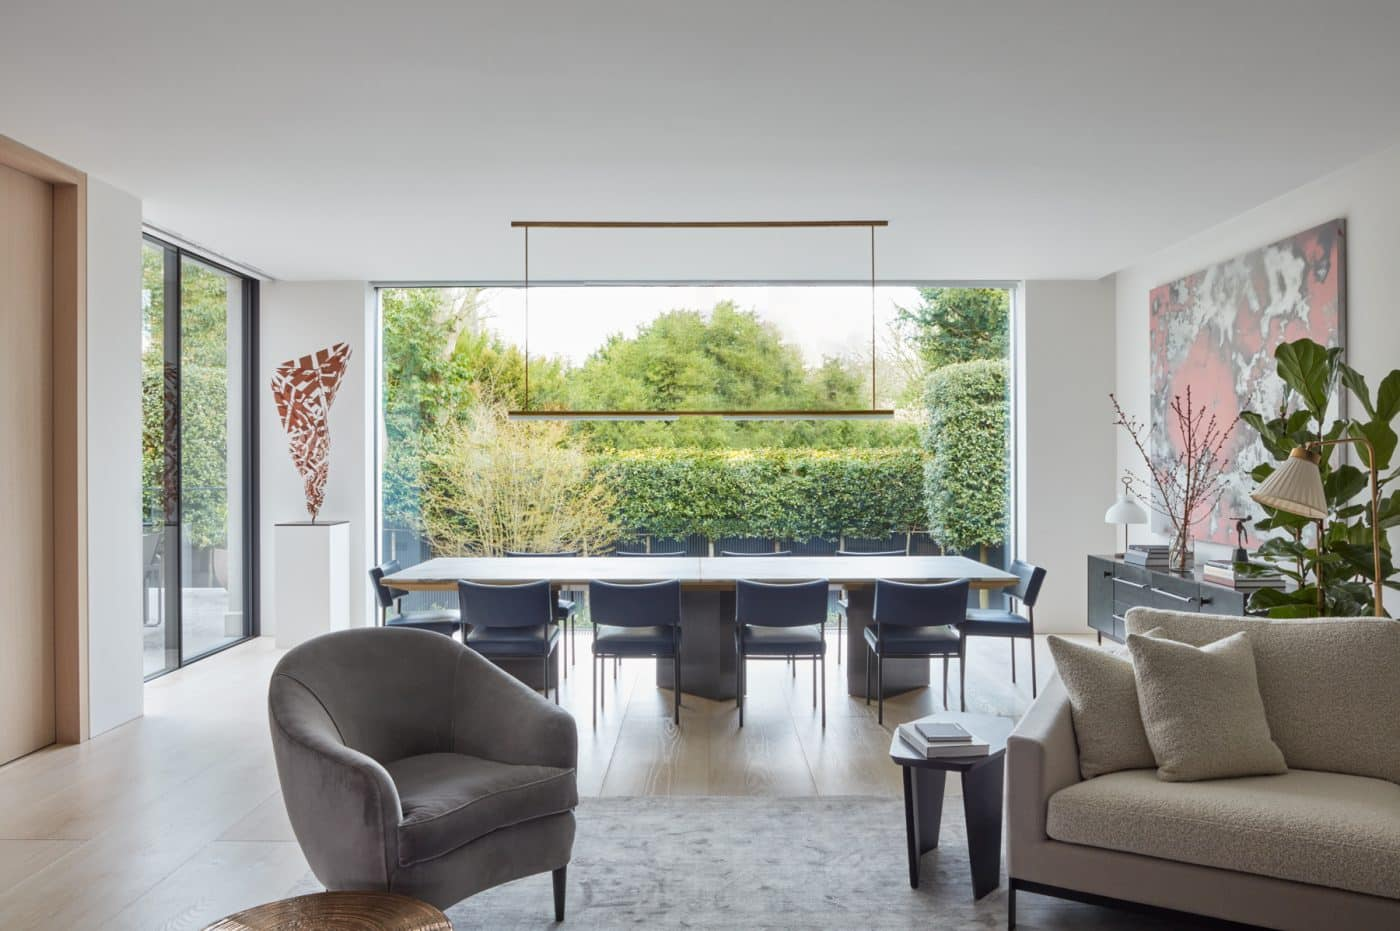 Hampstead, London dining area designed by Greenhill